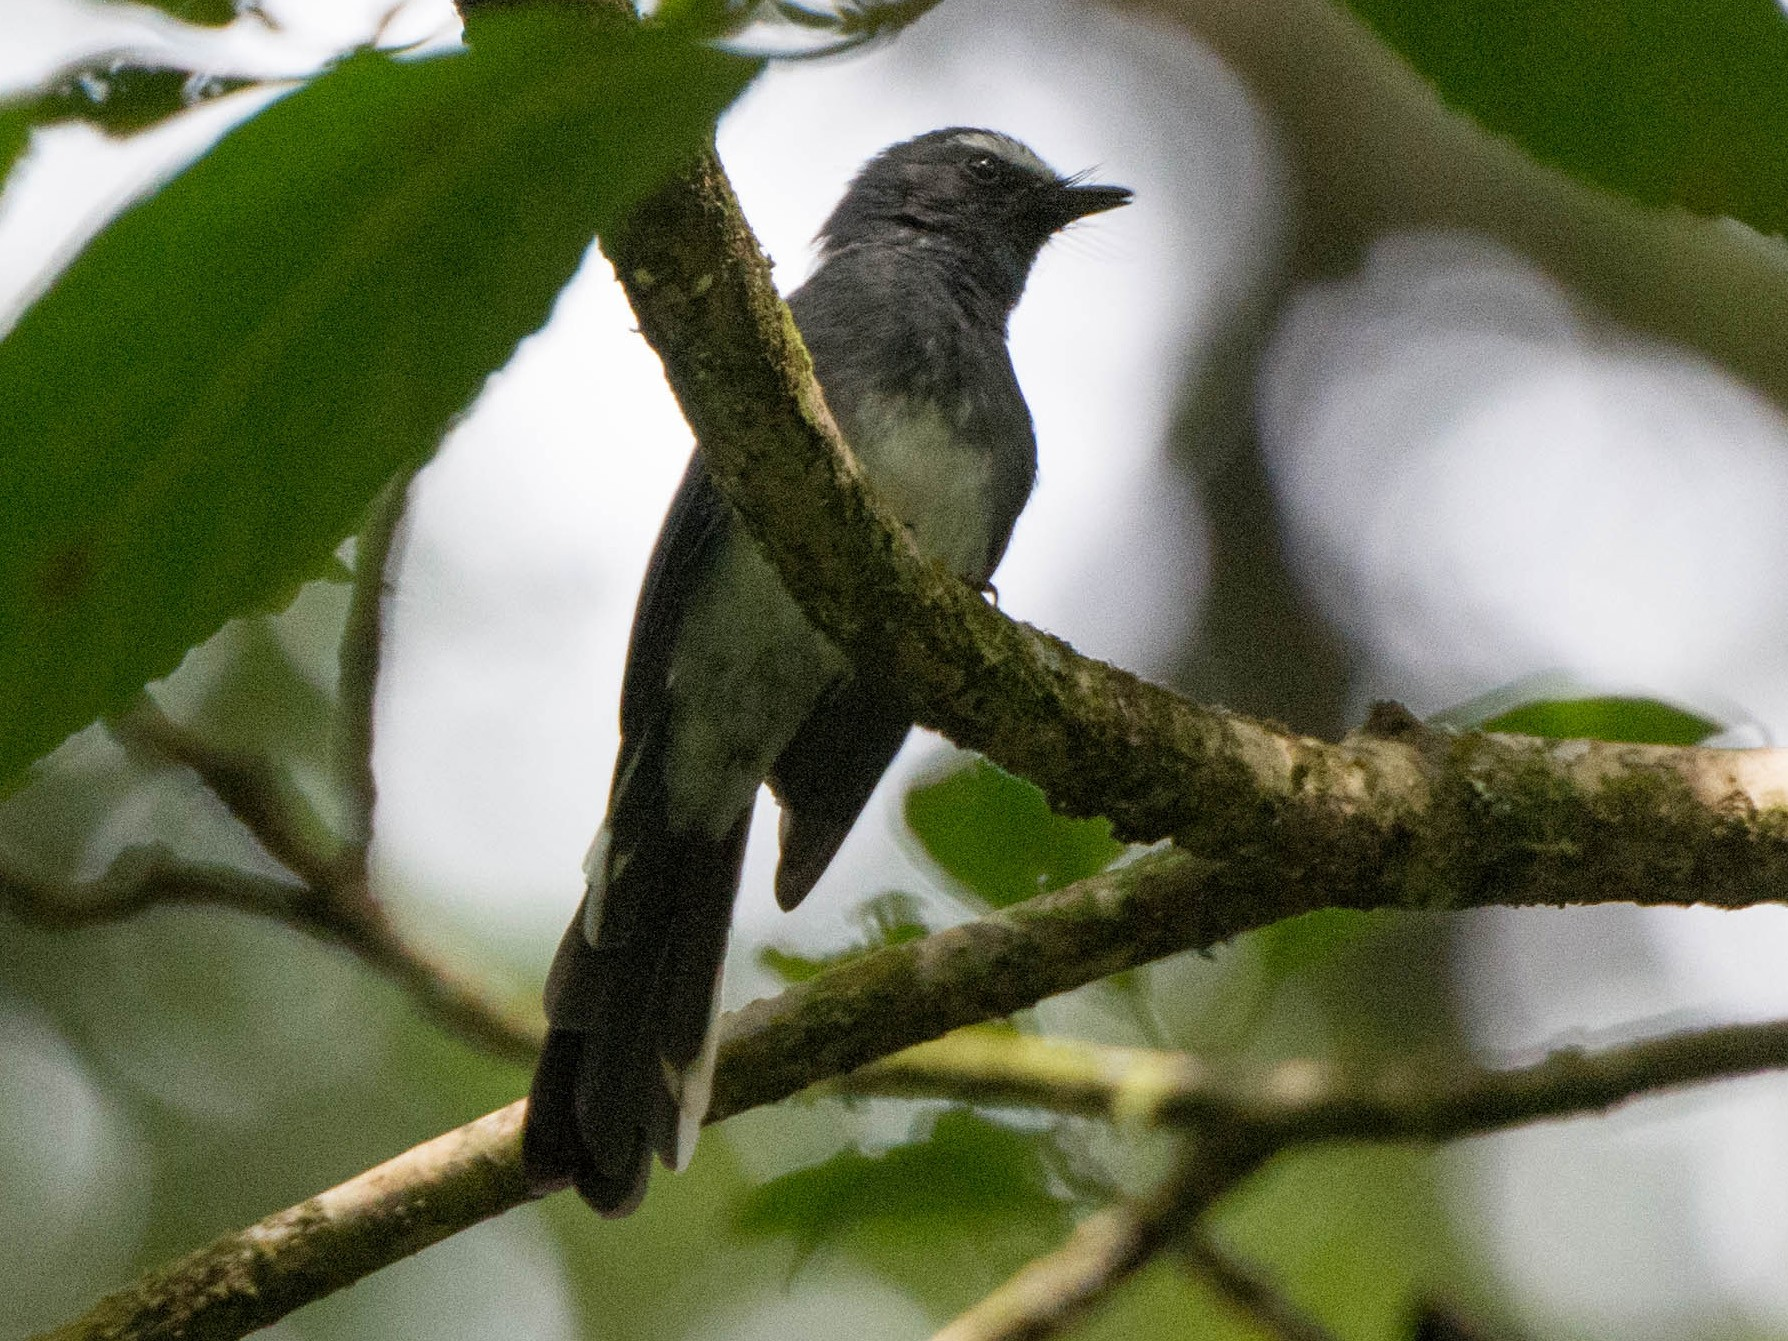 White-bellied Fantail - P. S. Lansley